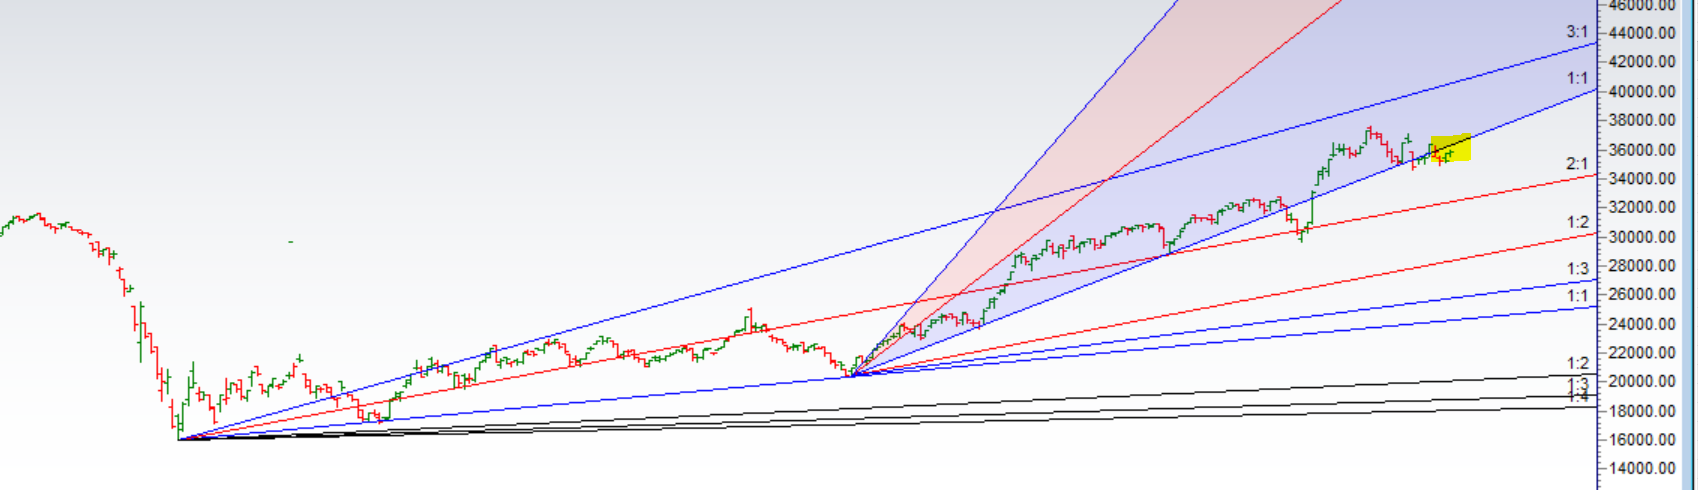 Nifty Bank Technical Analysis and Insights for 12 March